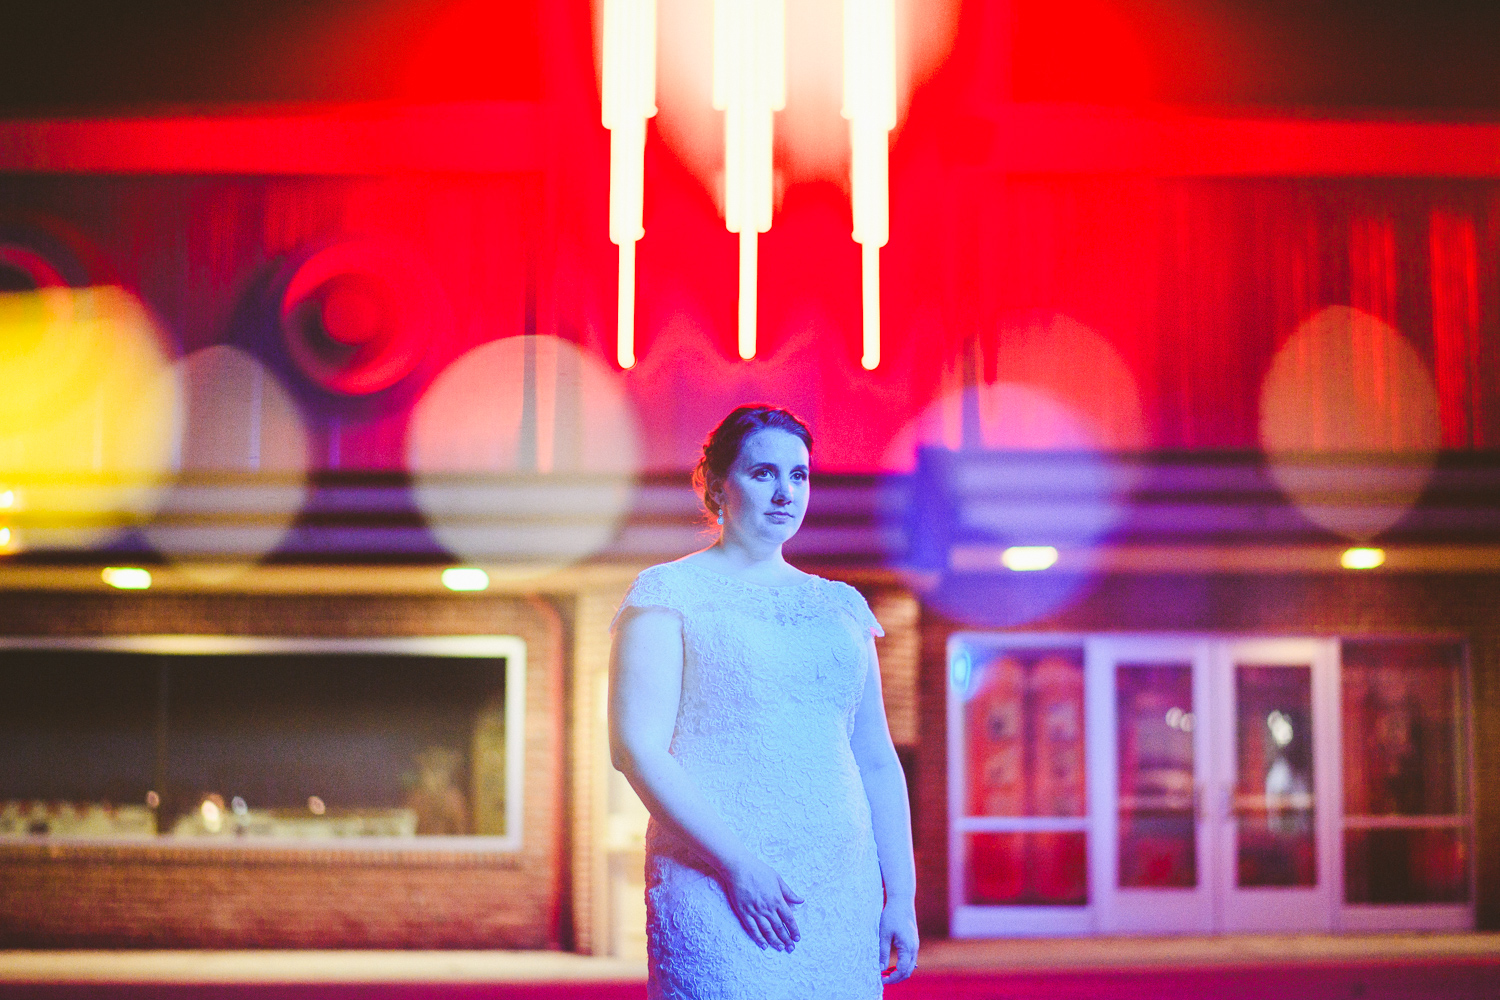 026 - colorful creative wedding portrait of bride at night at glen echo park.jpg